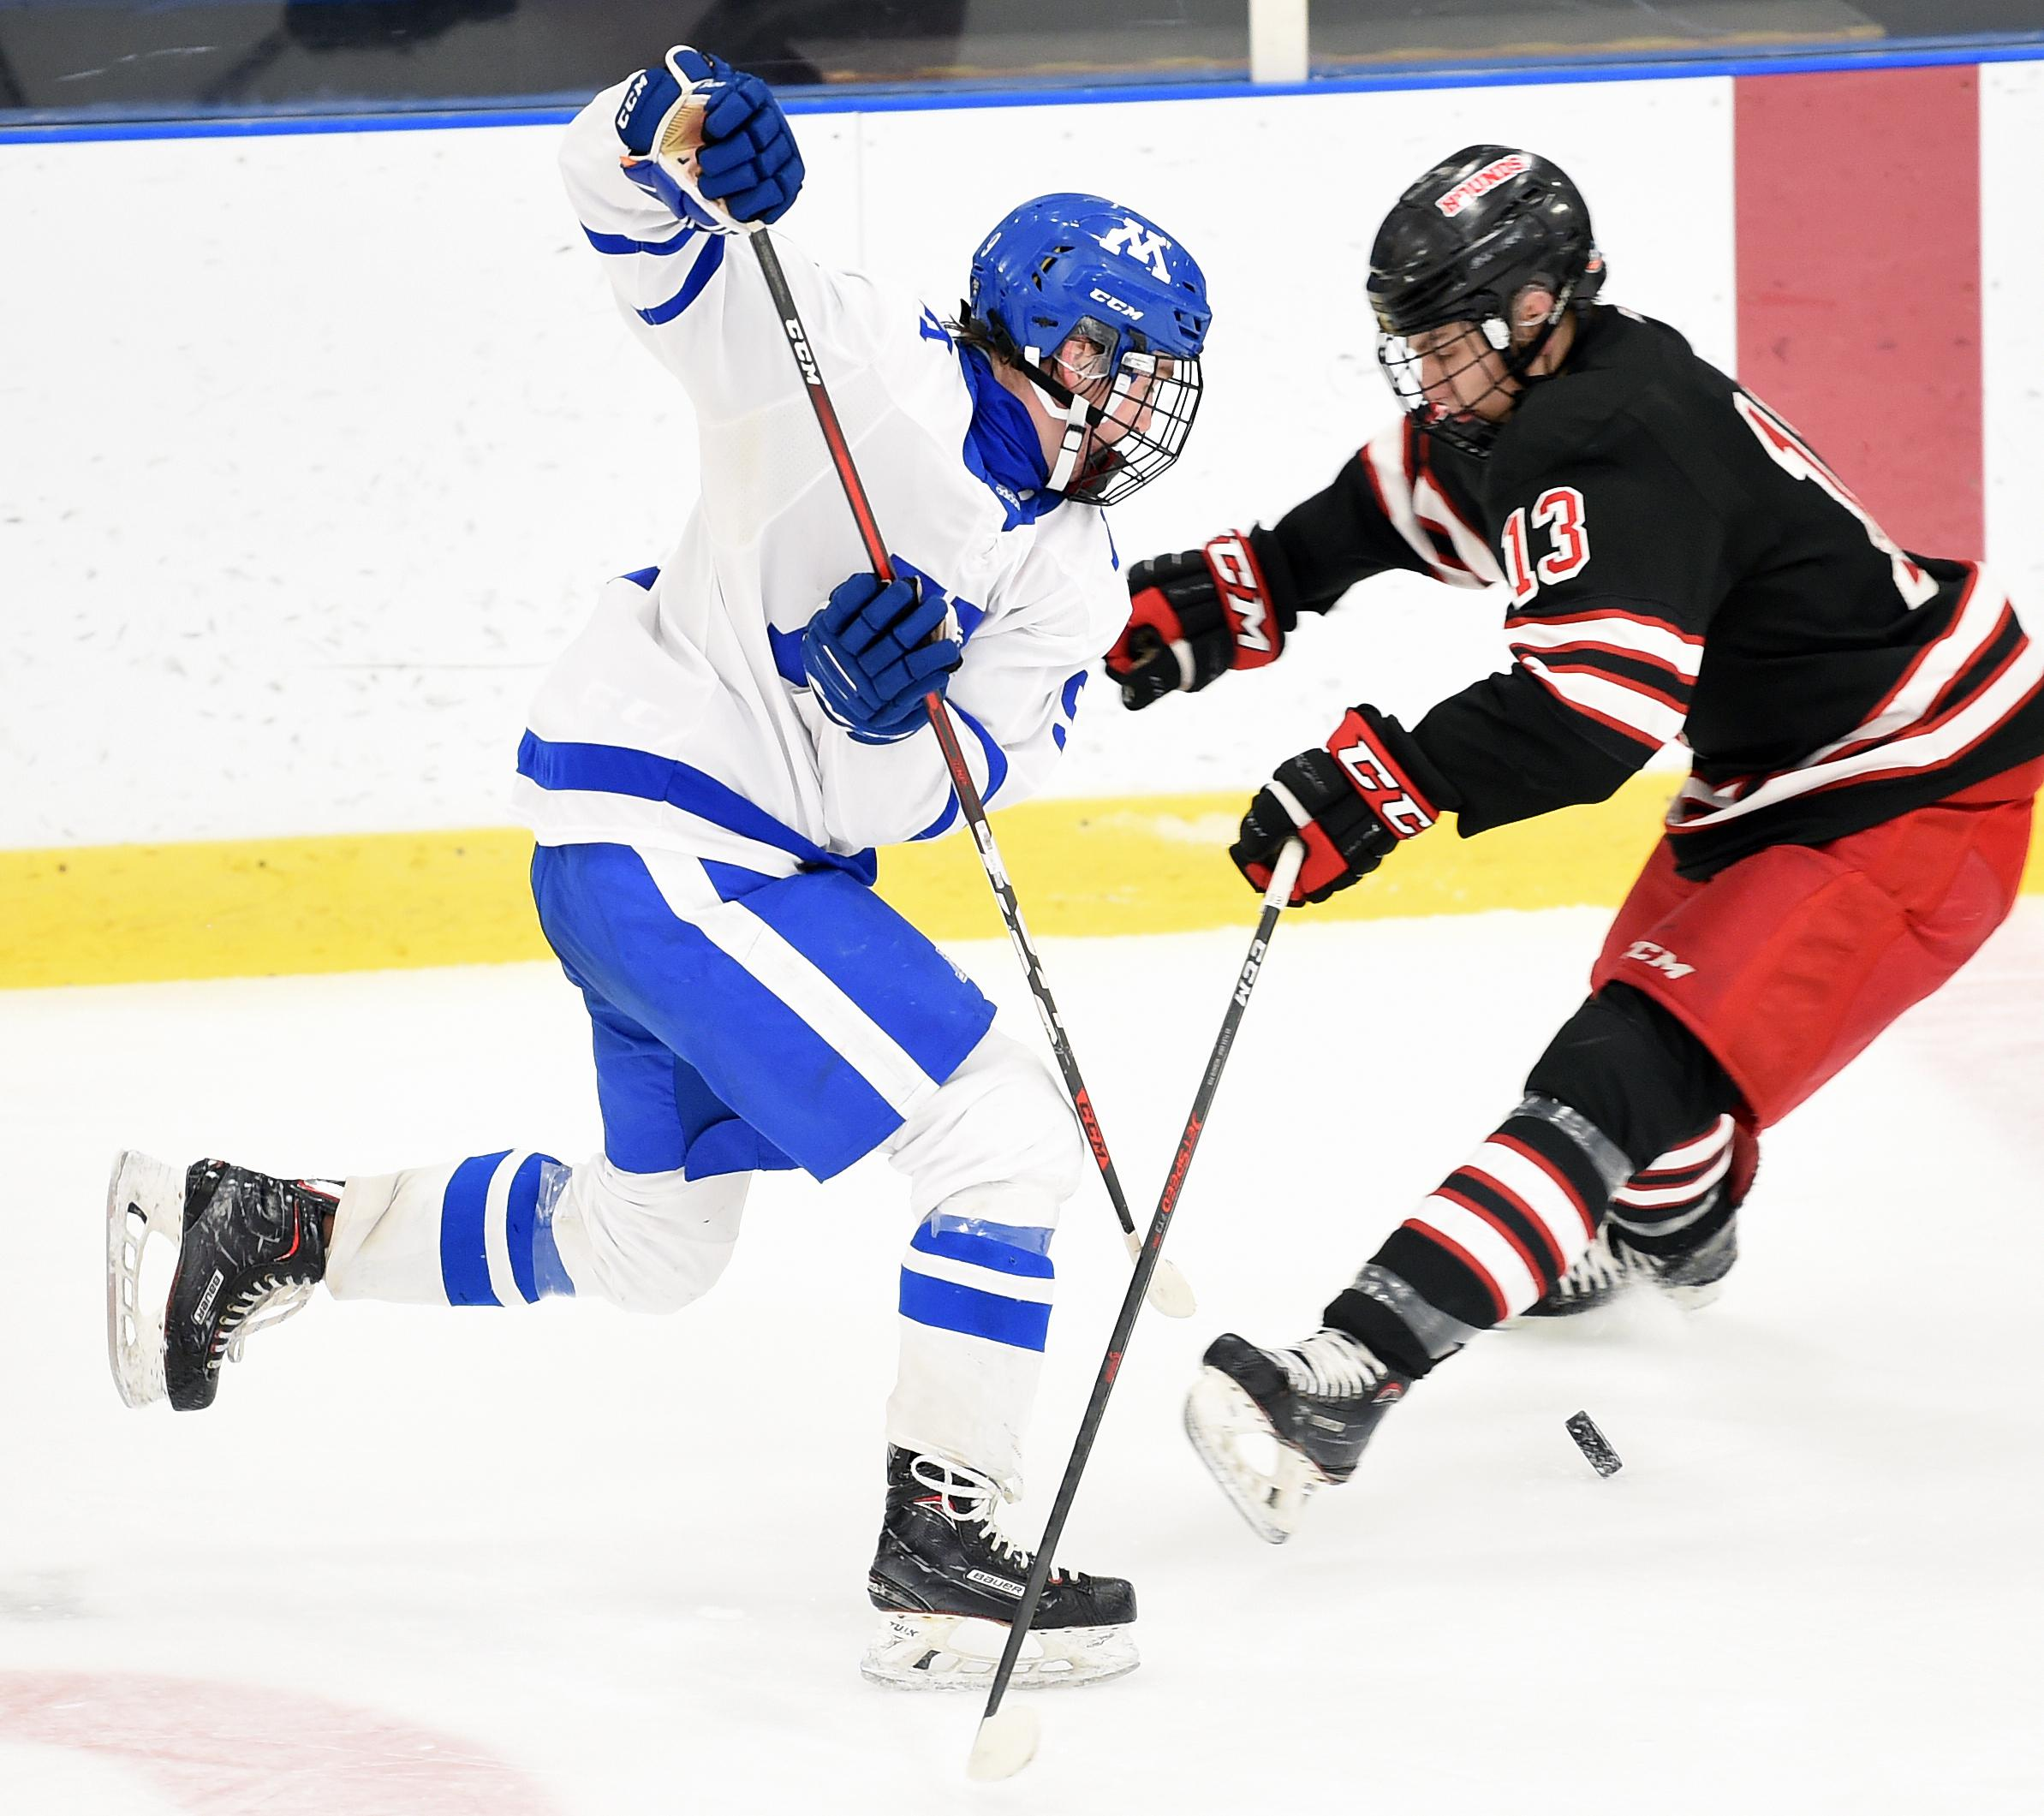 Minnetonka's Graham Harris, left, attempts to avoid the outstretched leg of Duluth East's Tyler Smith. Photo by Loren Nelson, SportsEngine